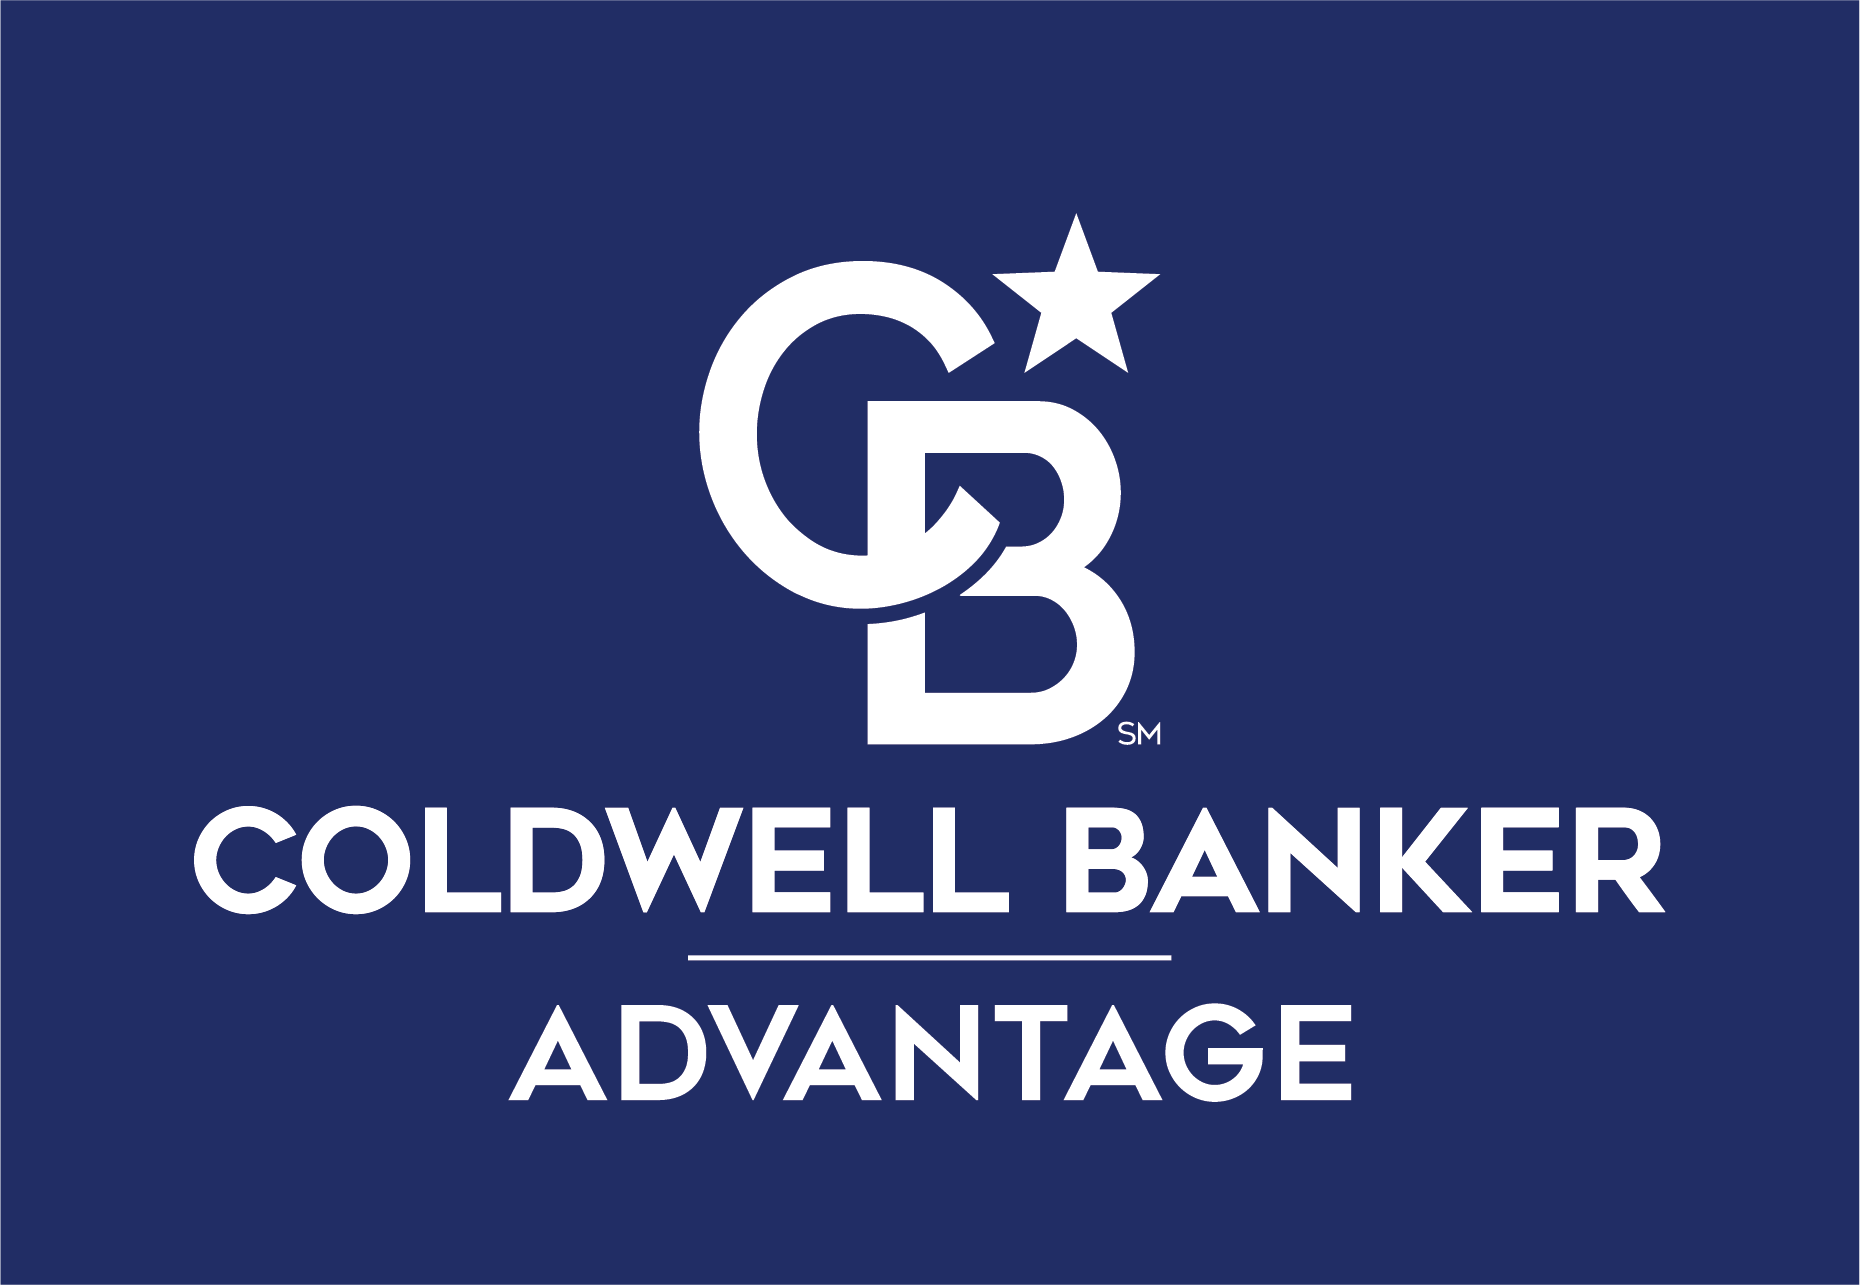 David Lane - Coldwell Banker Advantage Logo